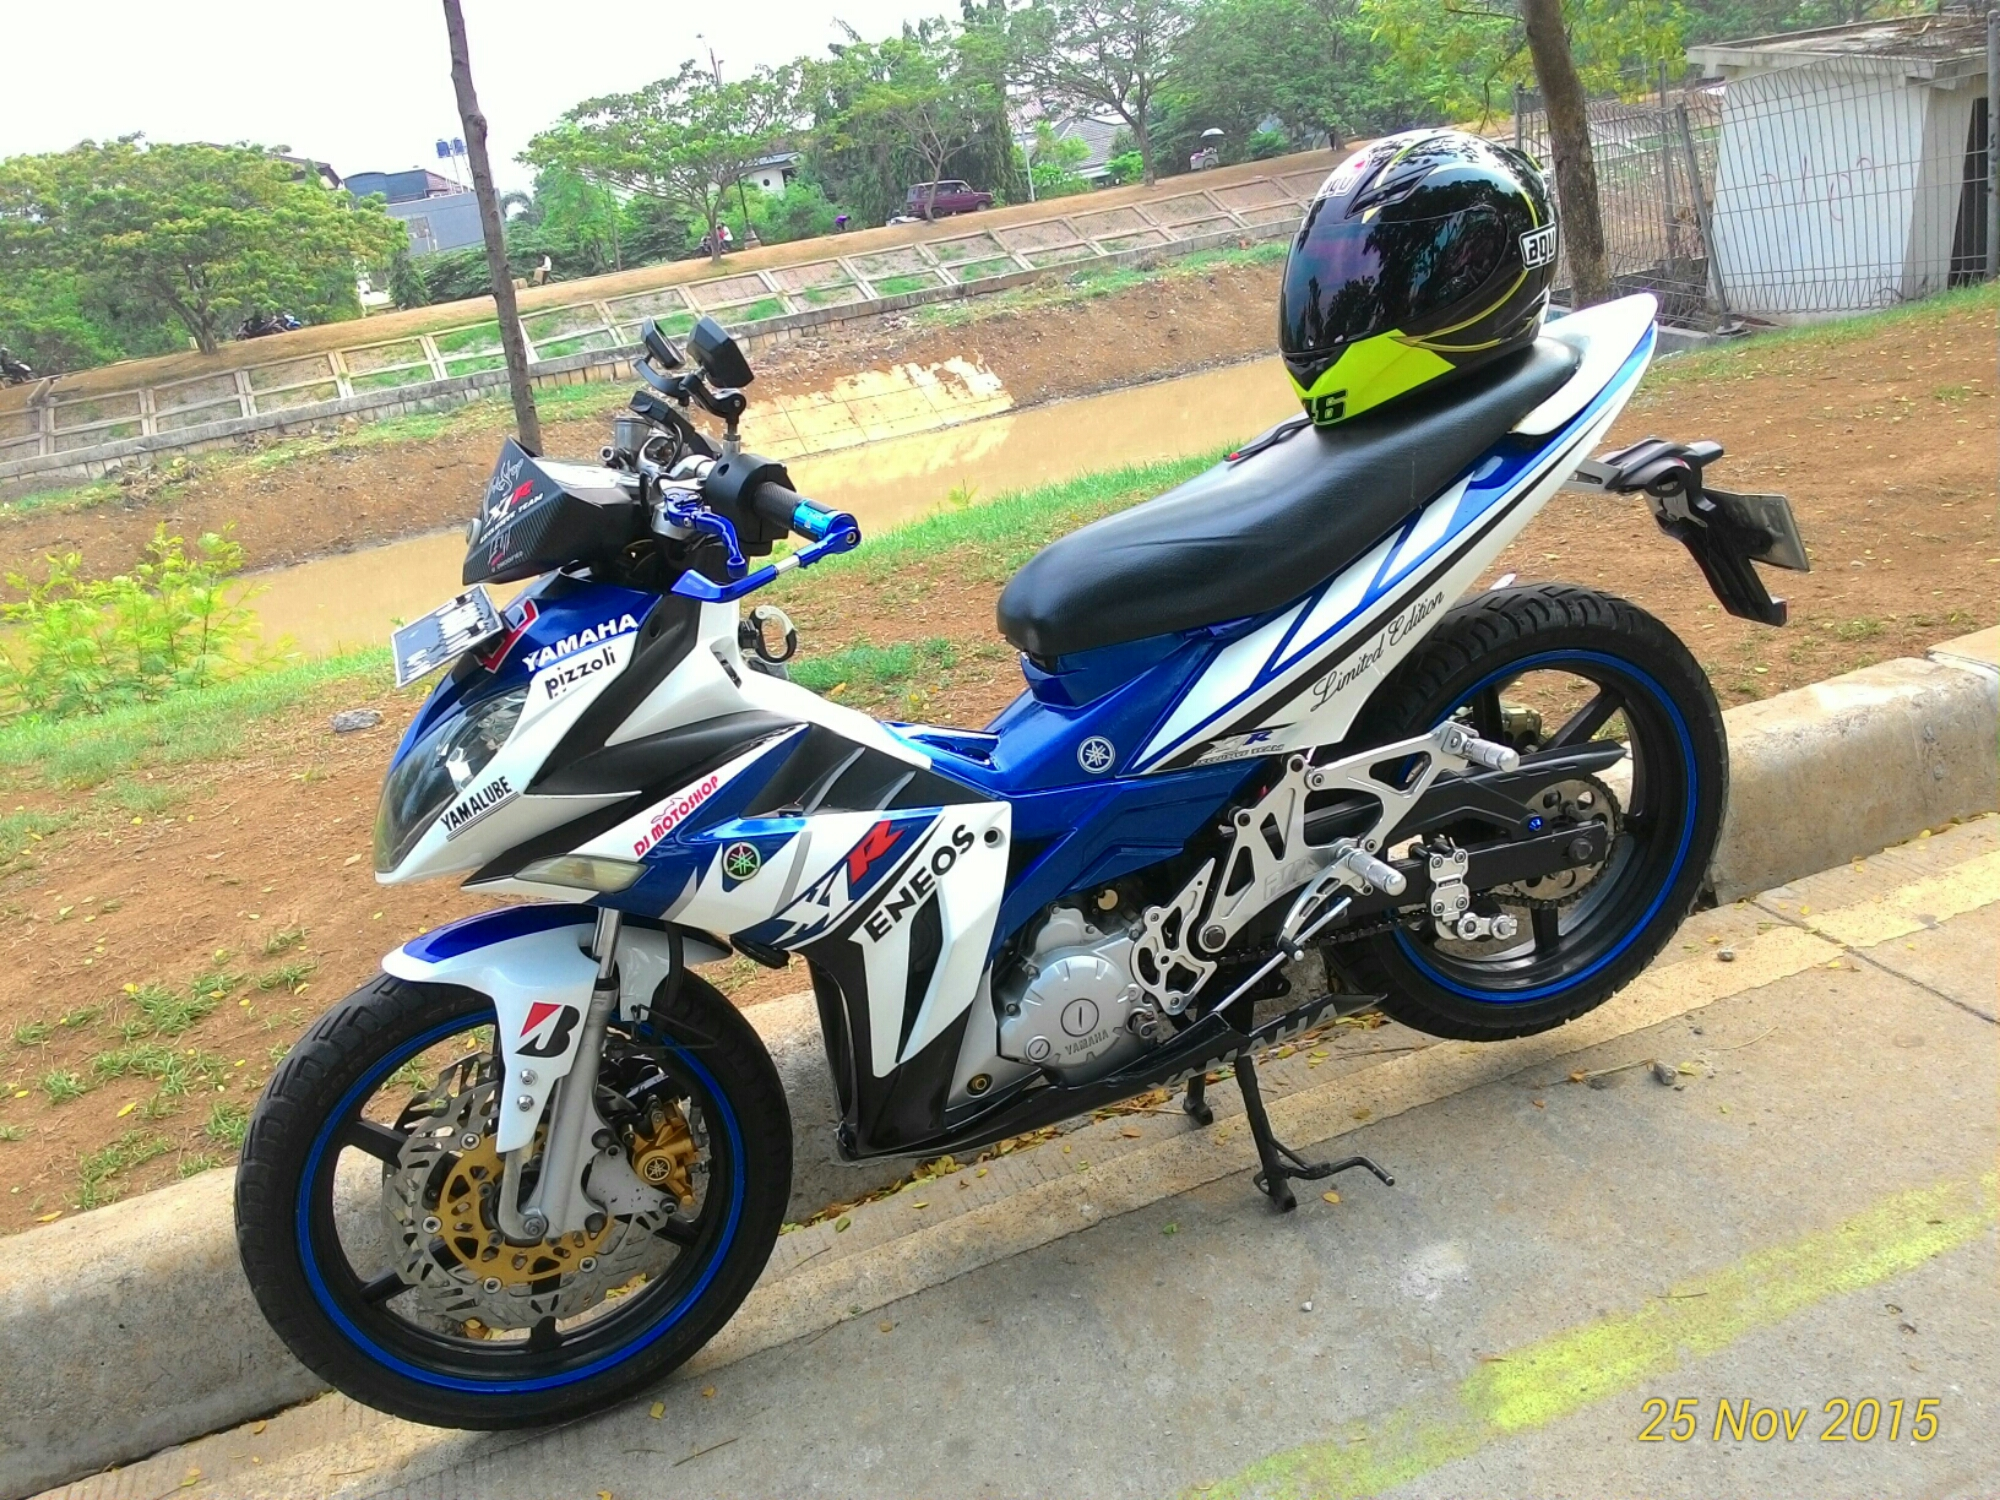 Blue Devil Modifikasi Jupiter MX 135 Ala Yamaha X1R Milik Bro